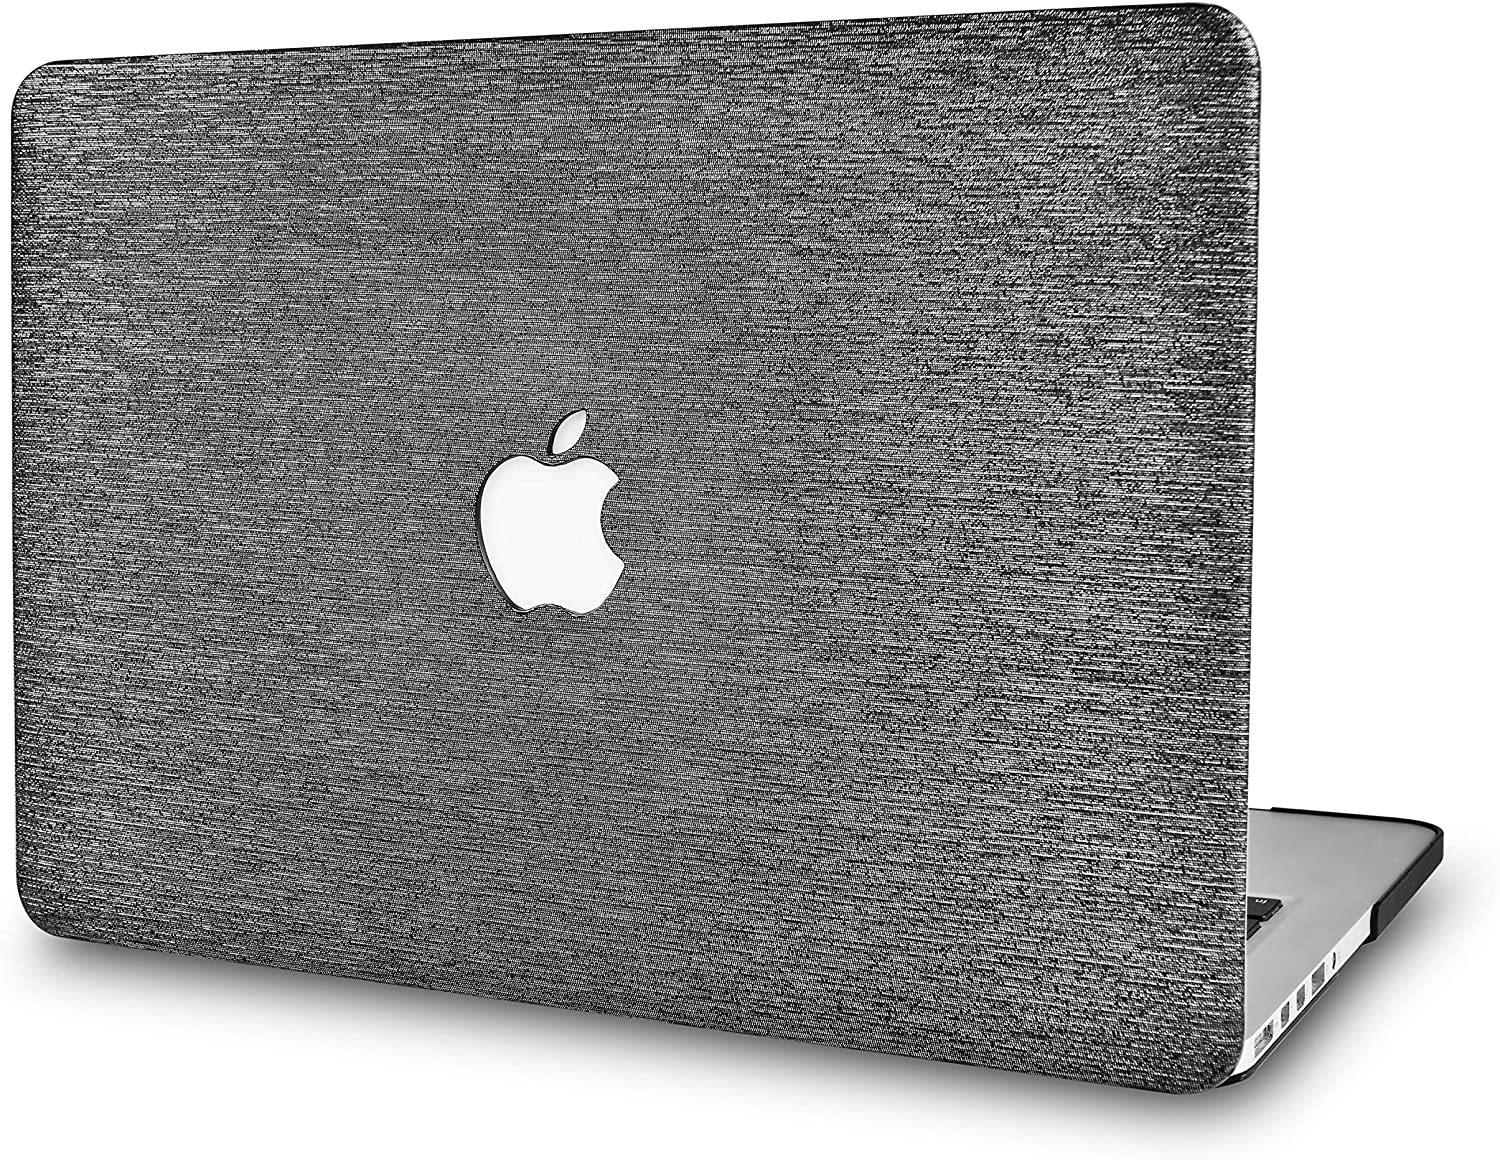 LuvCase Laptop Case for MacBook Pro 16 Touch Bar (2020/2019 Release) A2141 Leather Hard Shell Cover (Silver Grey Leather)